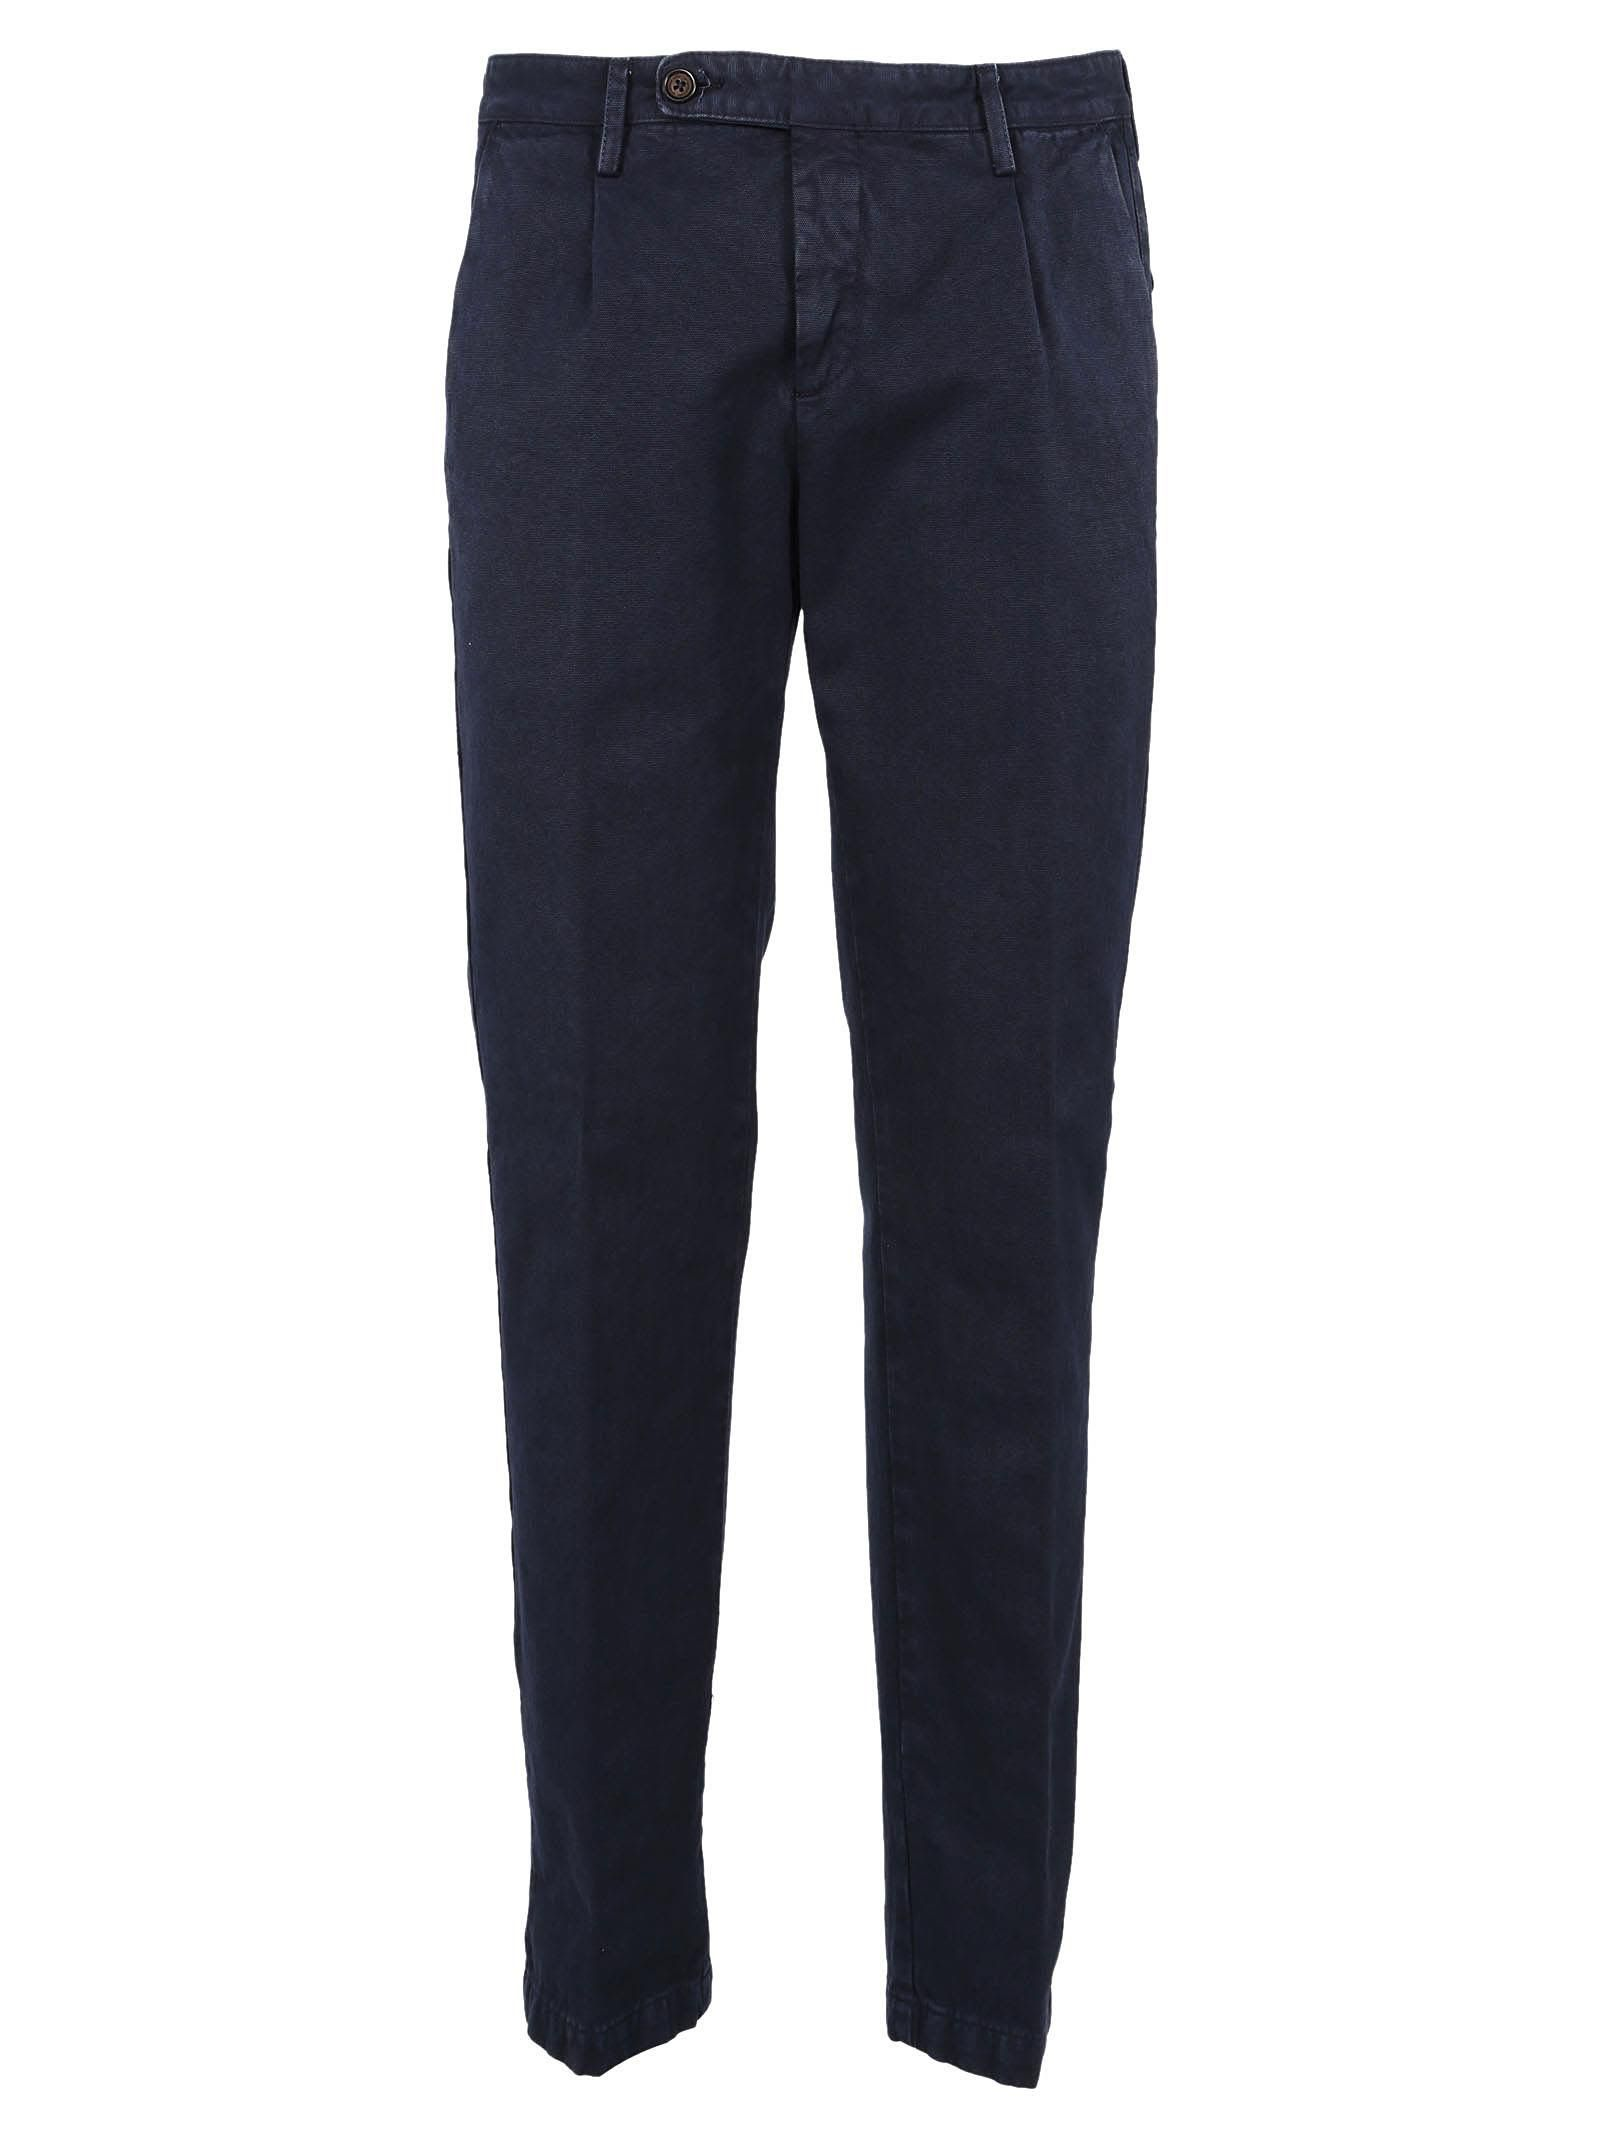 Winch Slim-fit Linen And Cotton-blend Trousers Massimo Alba Outlet Store Sale Online 9czioCYOh